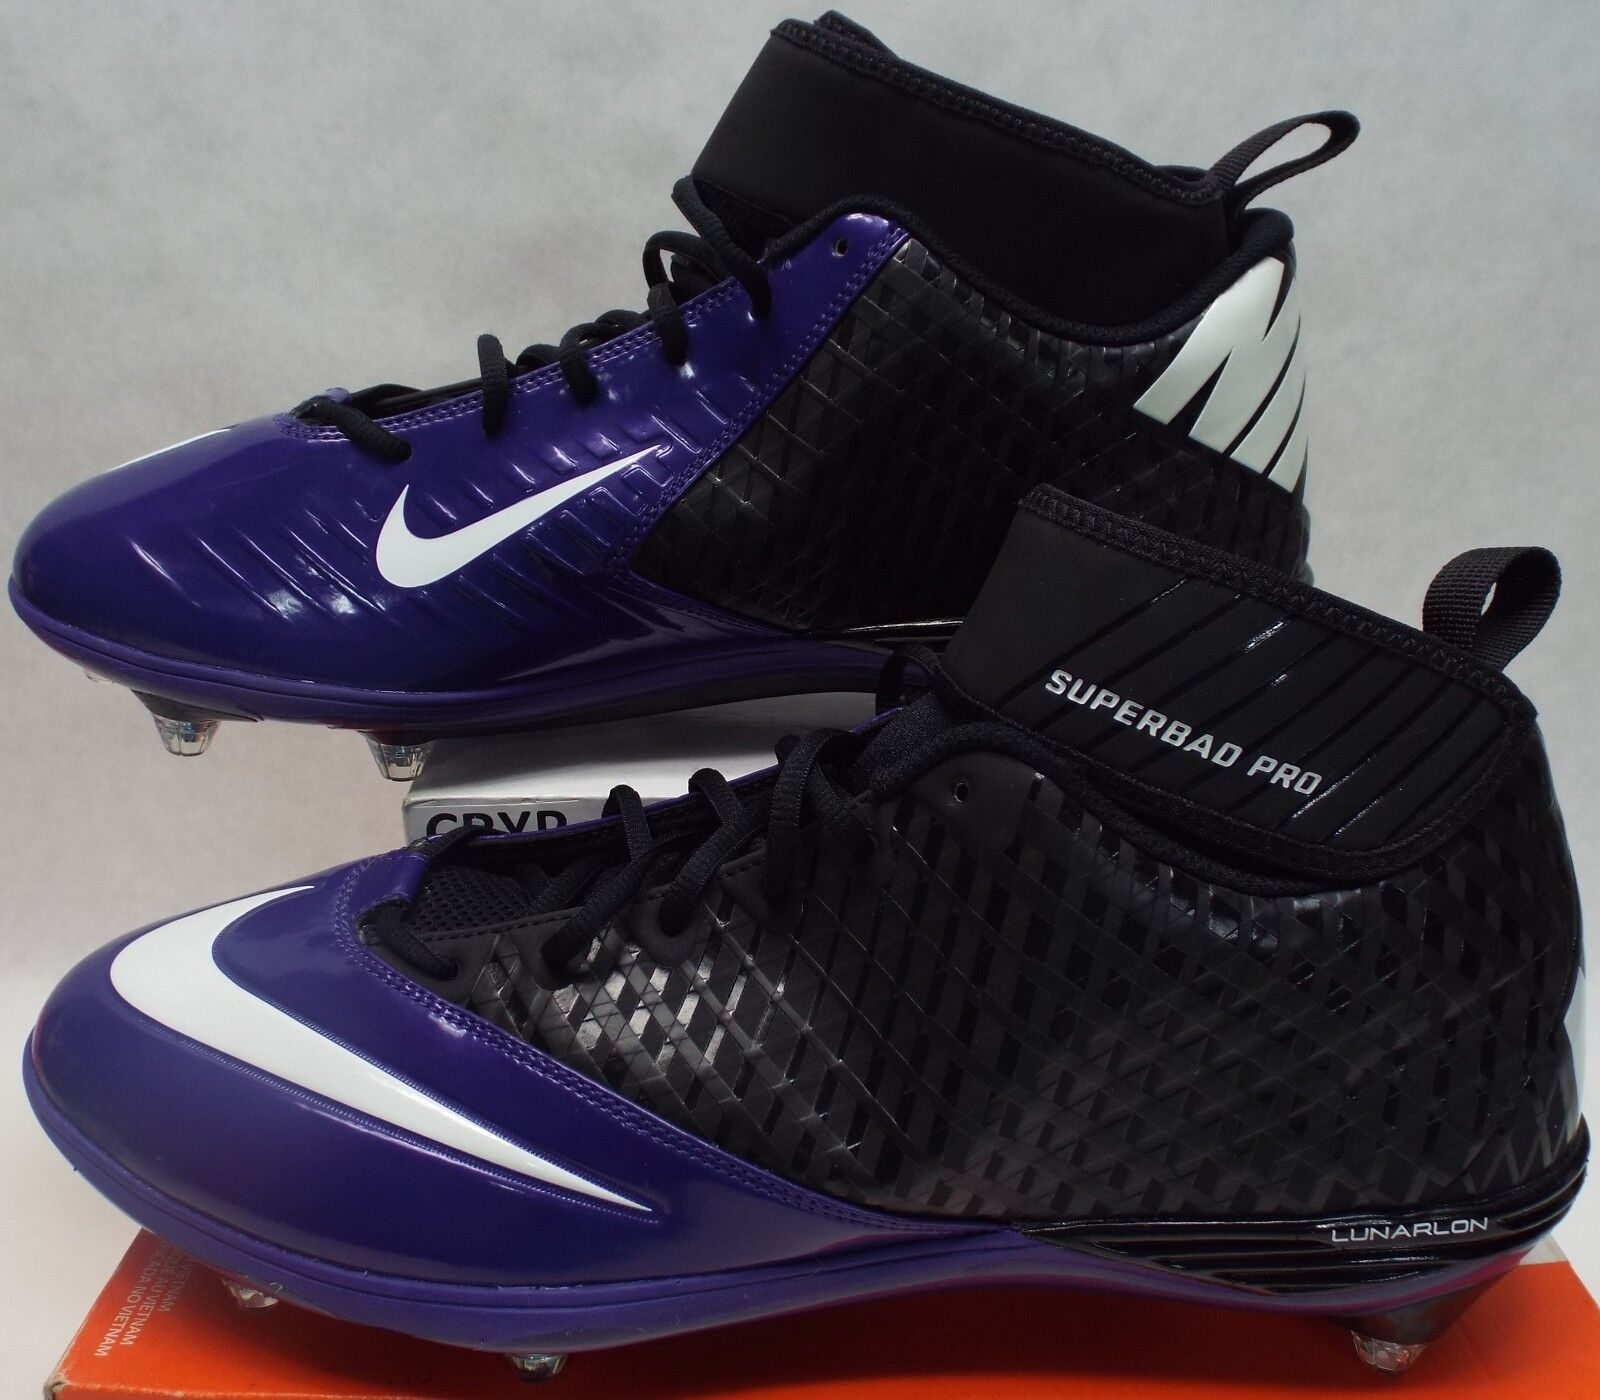 New Superbad homme 14.5 NIKE Lunarlon Superbad New Pro Vikings Cleats chaussures 105 544762-003 d22e5f